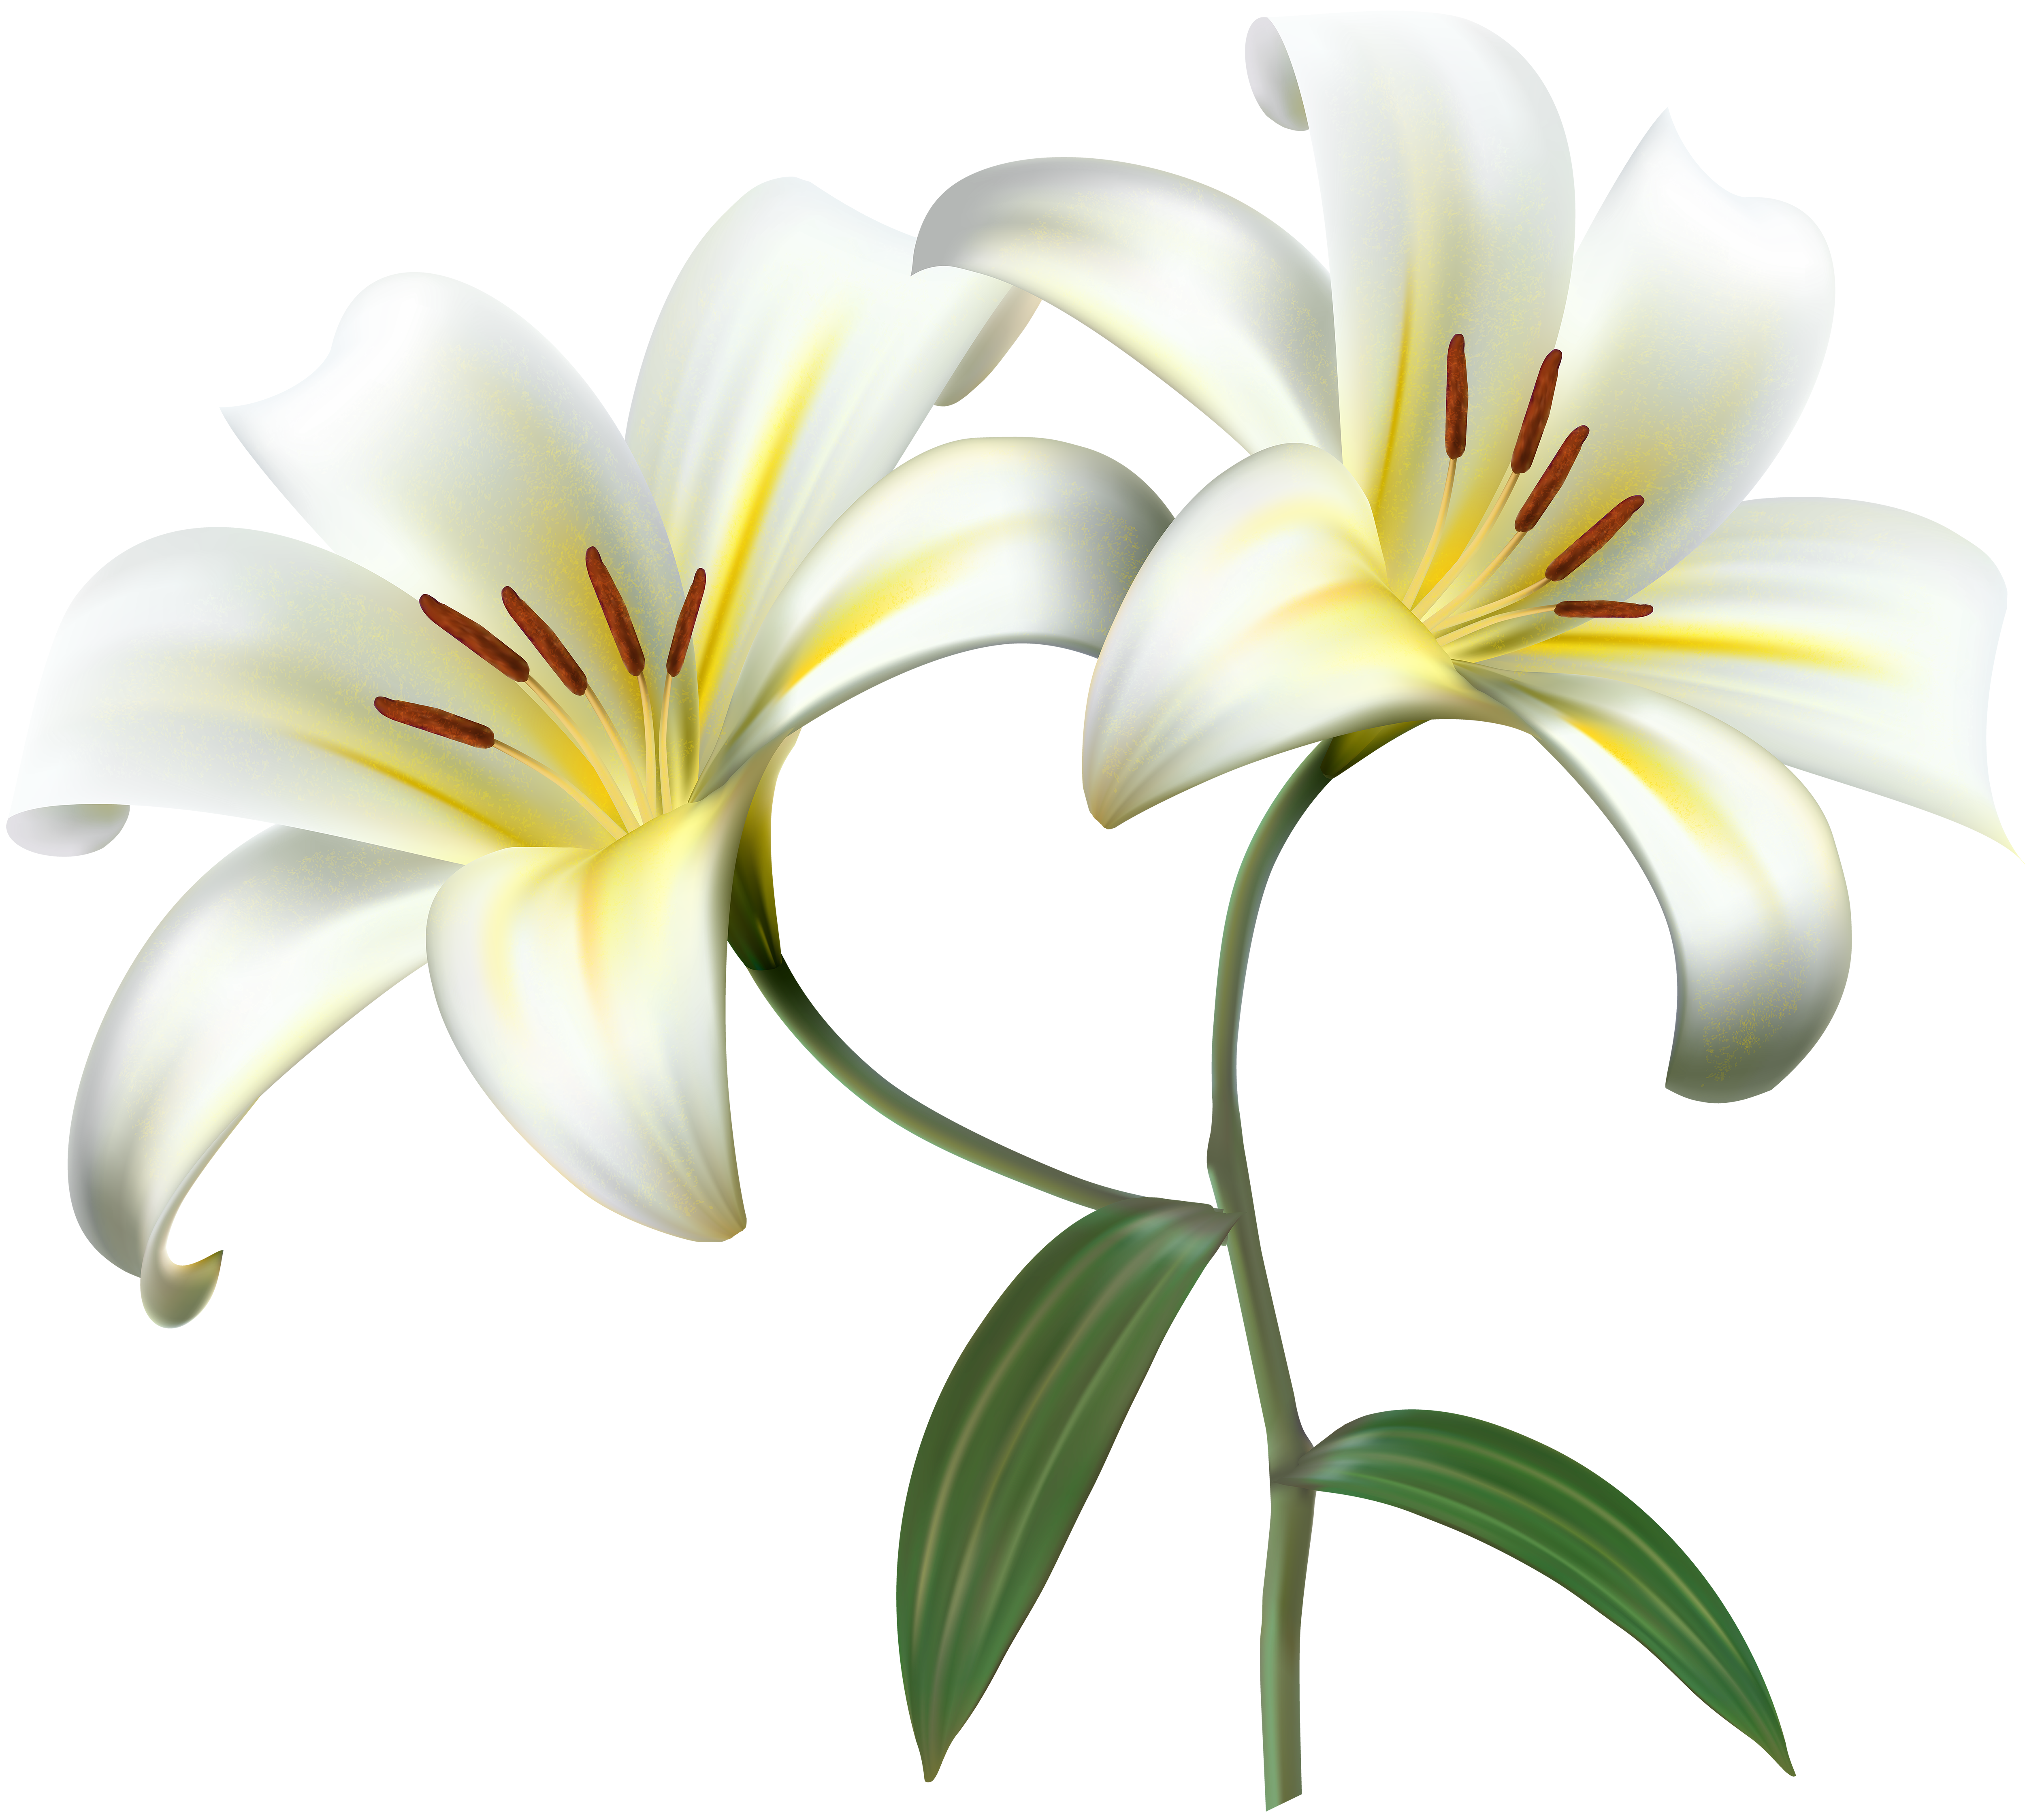 Lily flower border clipart graphic black and white download White Lilium Flower Decorative Transparent Image | Gallery ... graphic black and white download